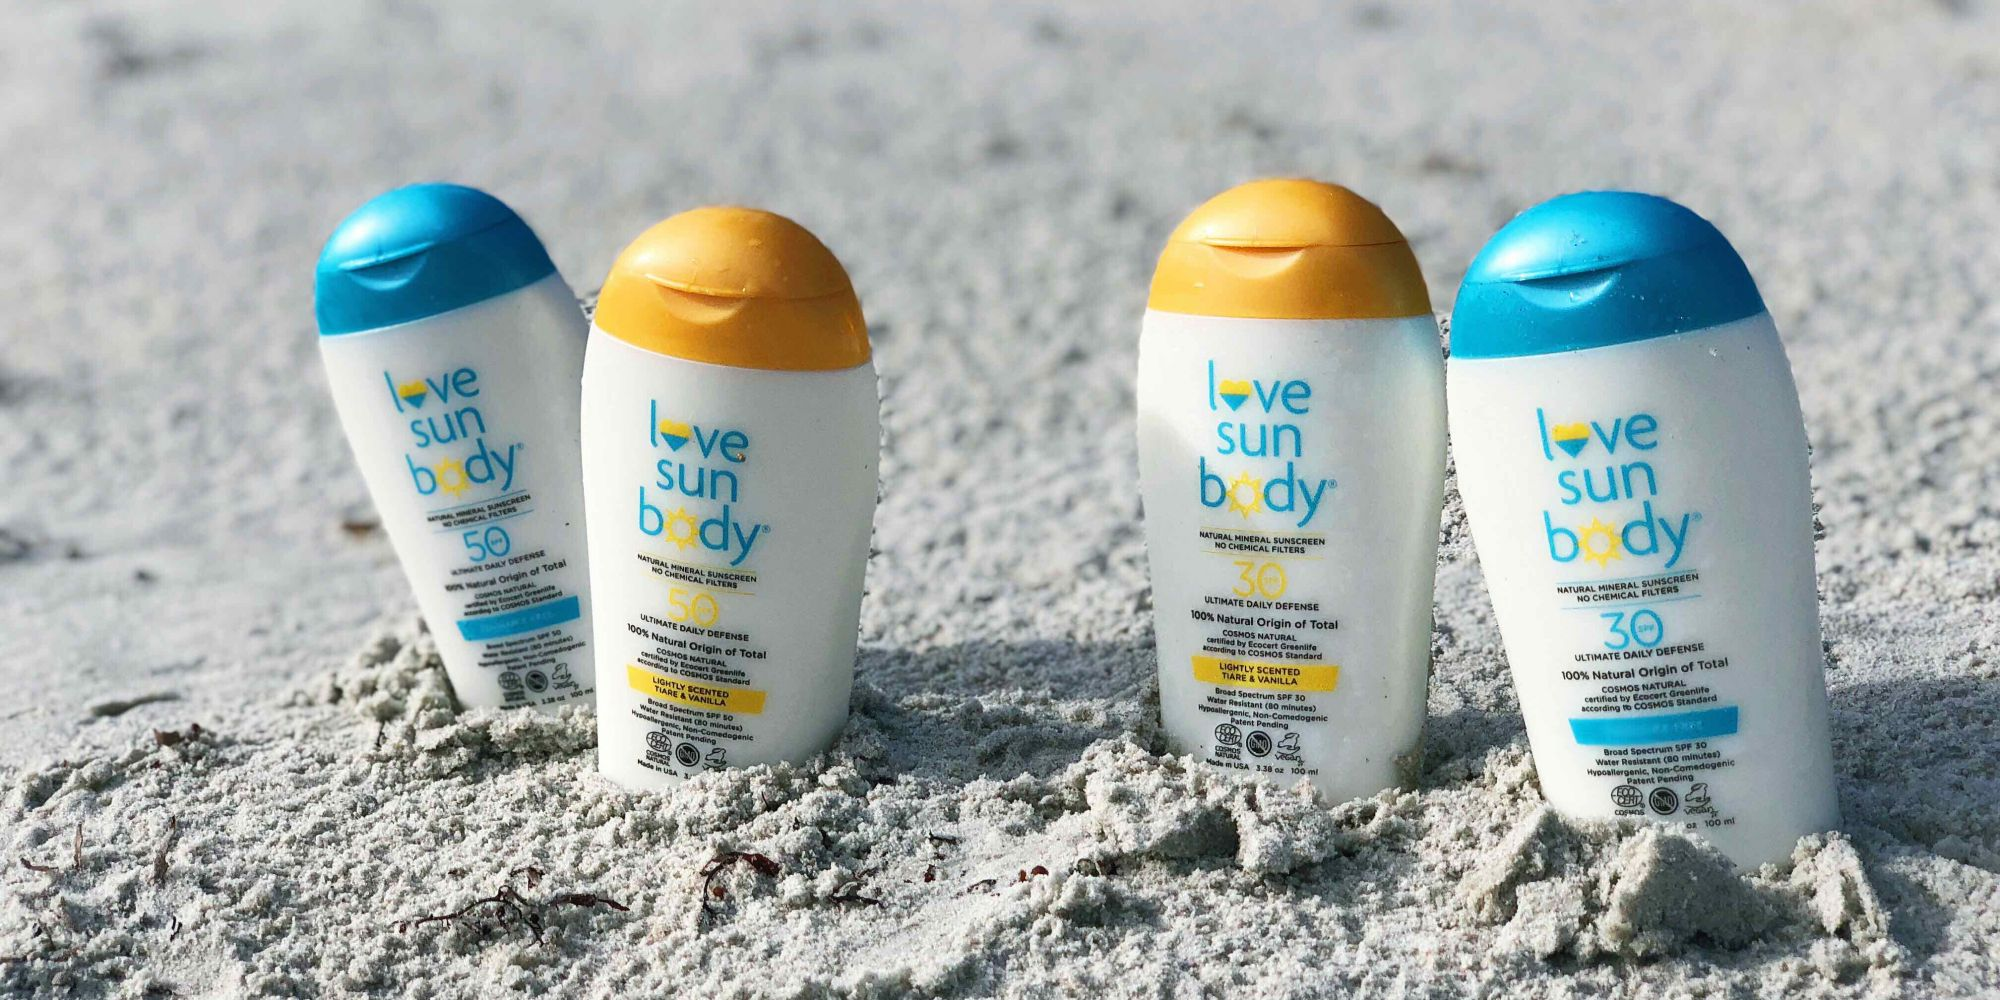 Love Sun Body Gets Bodies And Faces Beach-Ready With Mineral Sunscreens Carrying The EcoCert Cosmos Seal